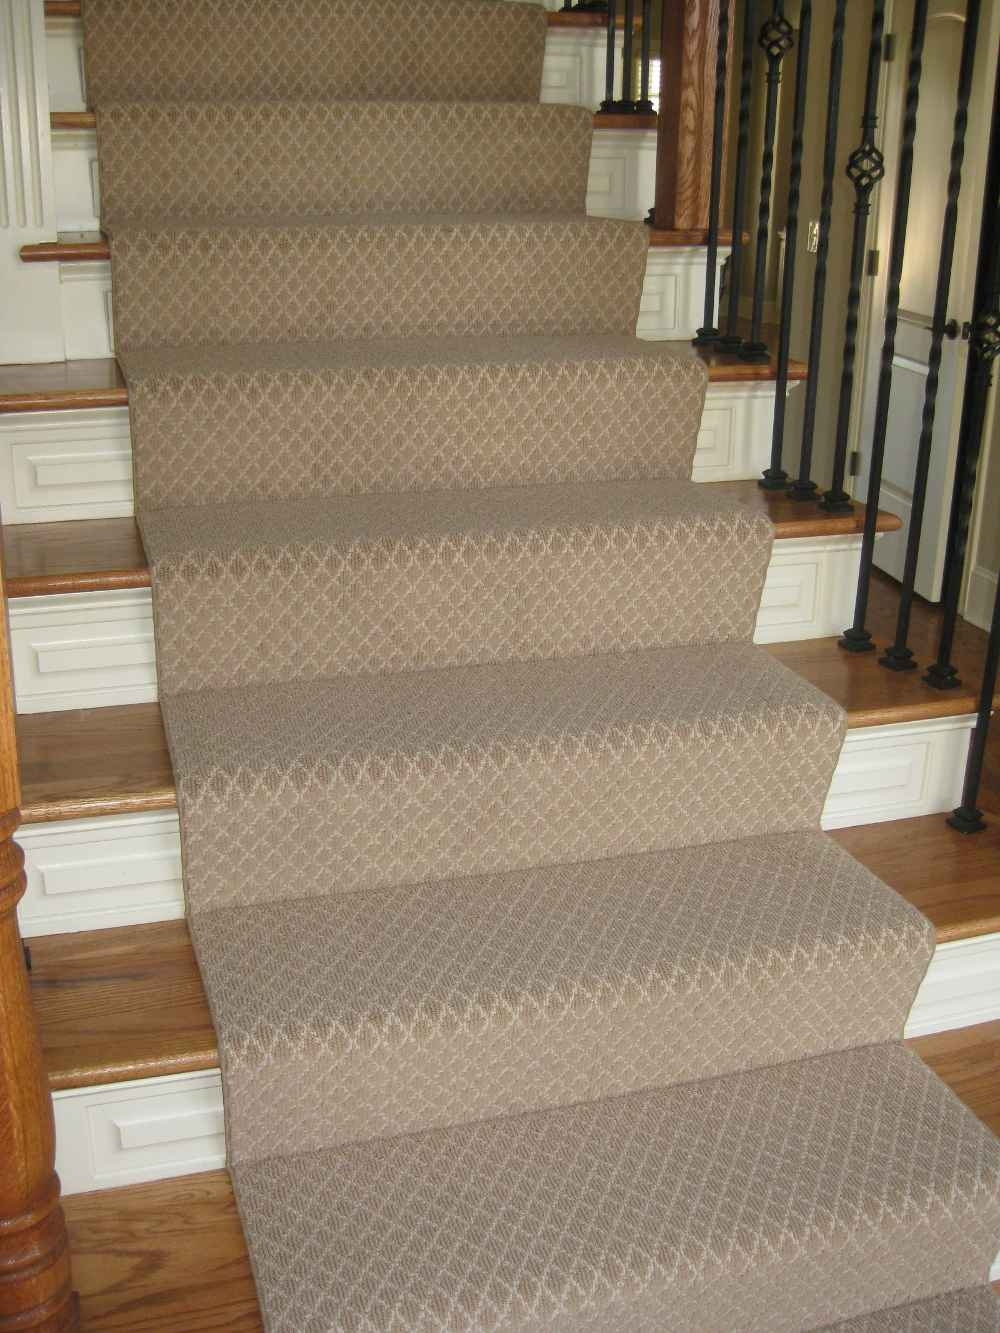 Keep Plastic Carpet Runners For Stairs Interior Home Design Within Stair And Hallway Runners (#17 of 20)